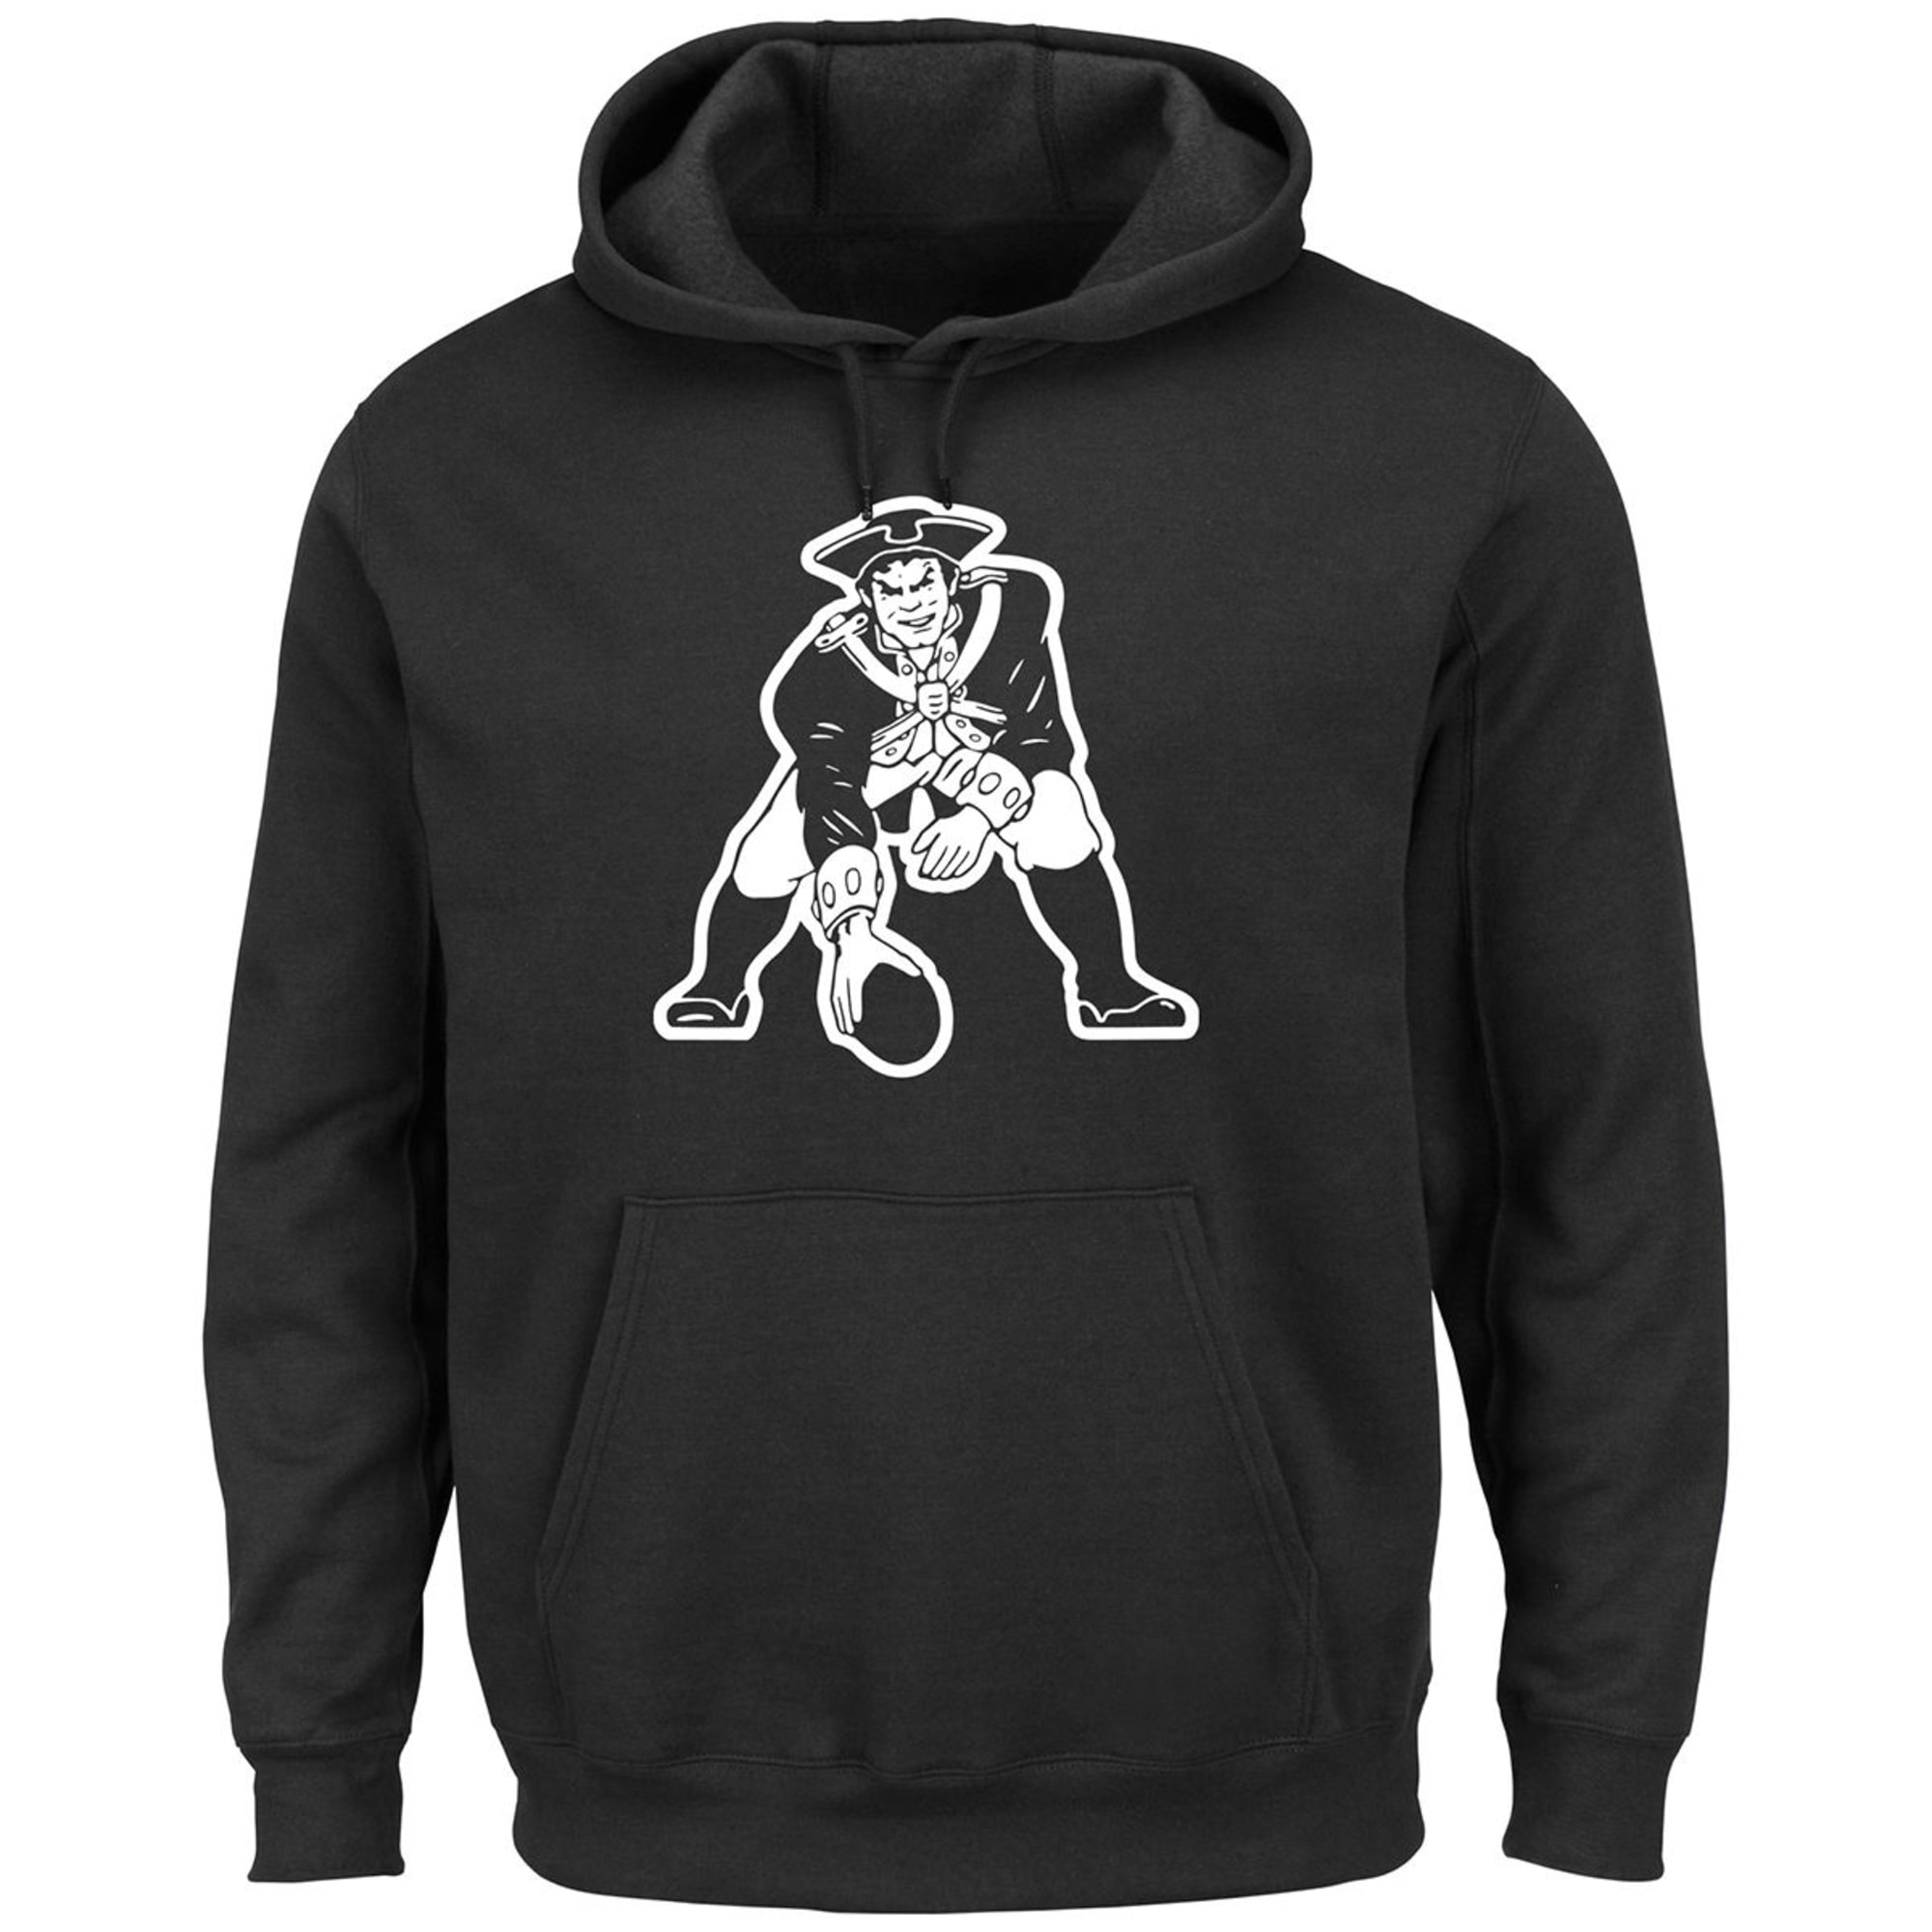 cheaper b7d11 06fc3 NEW ENGLAND PATRIOTS Men's Black and White Pat The Patriot Pullover Hoodie